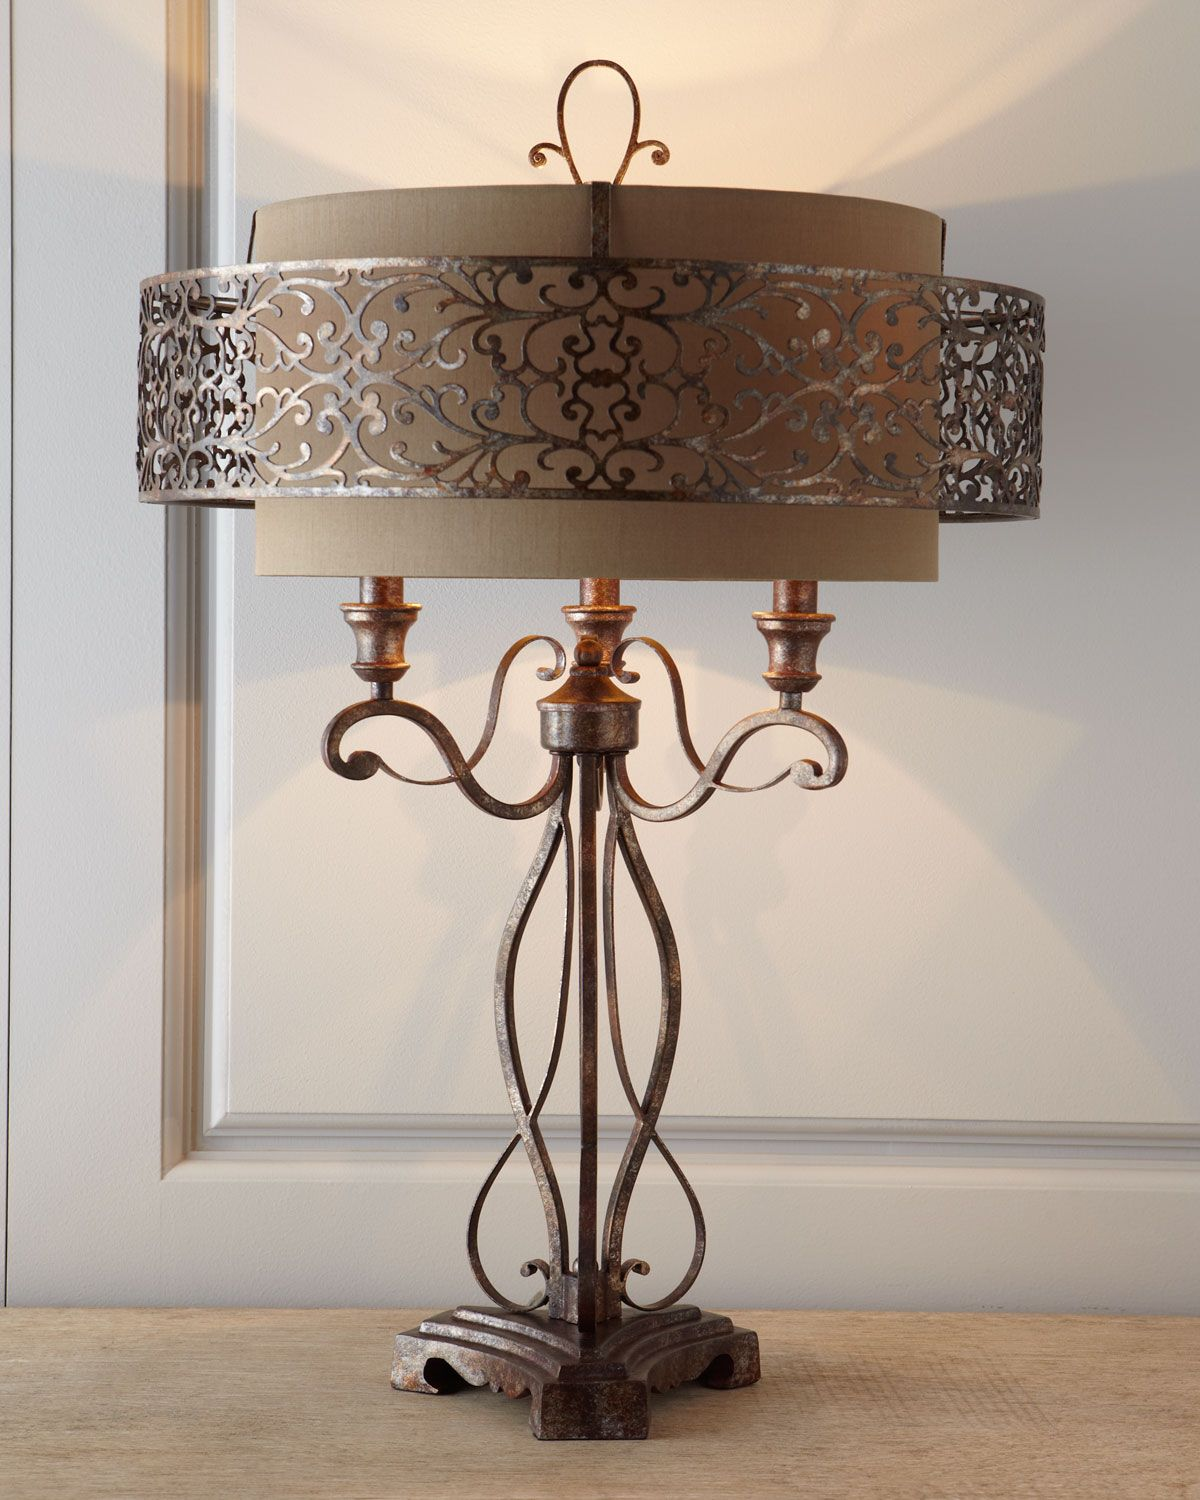 Moroccan inspired lamp by john richard collection at neiman marcus moroccan inspired lamp by john richard collection at neiman marcus geotapseo Image collections